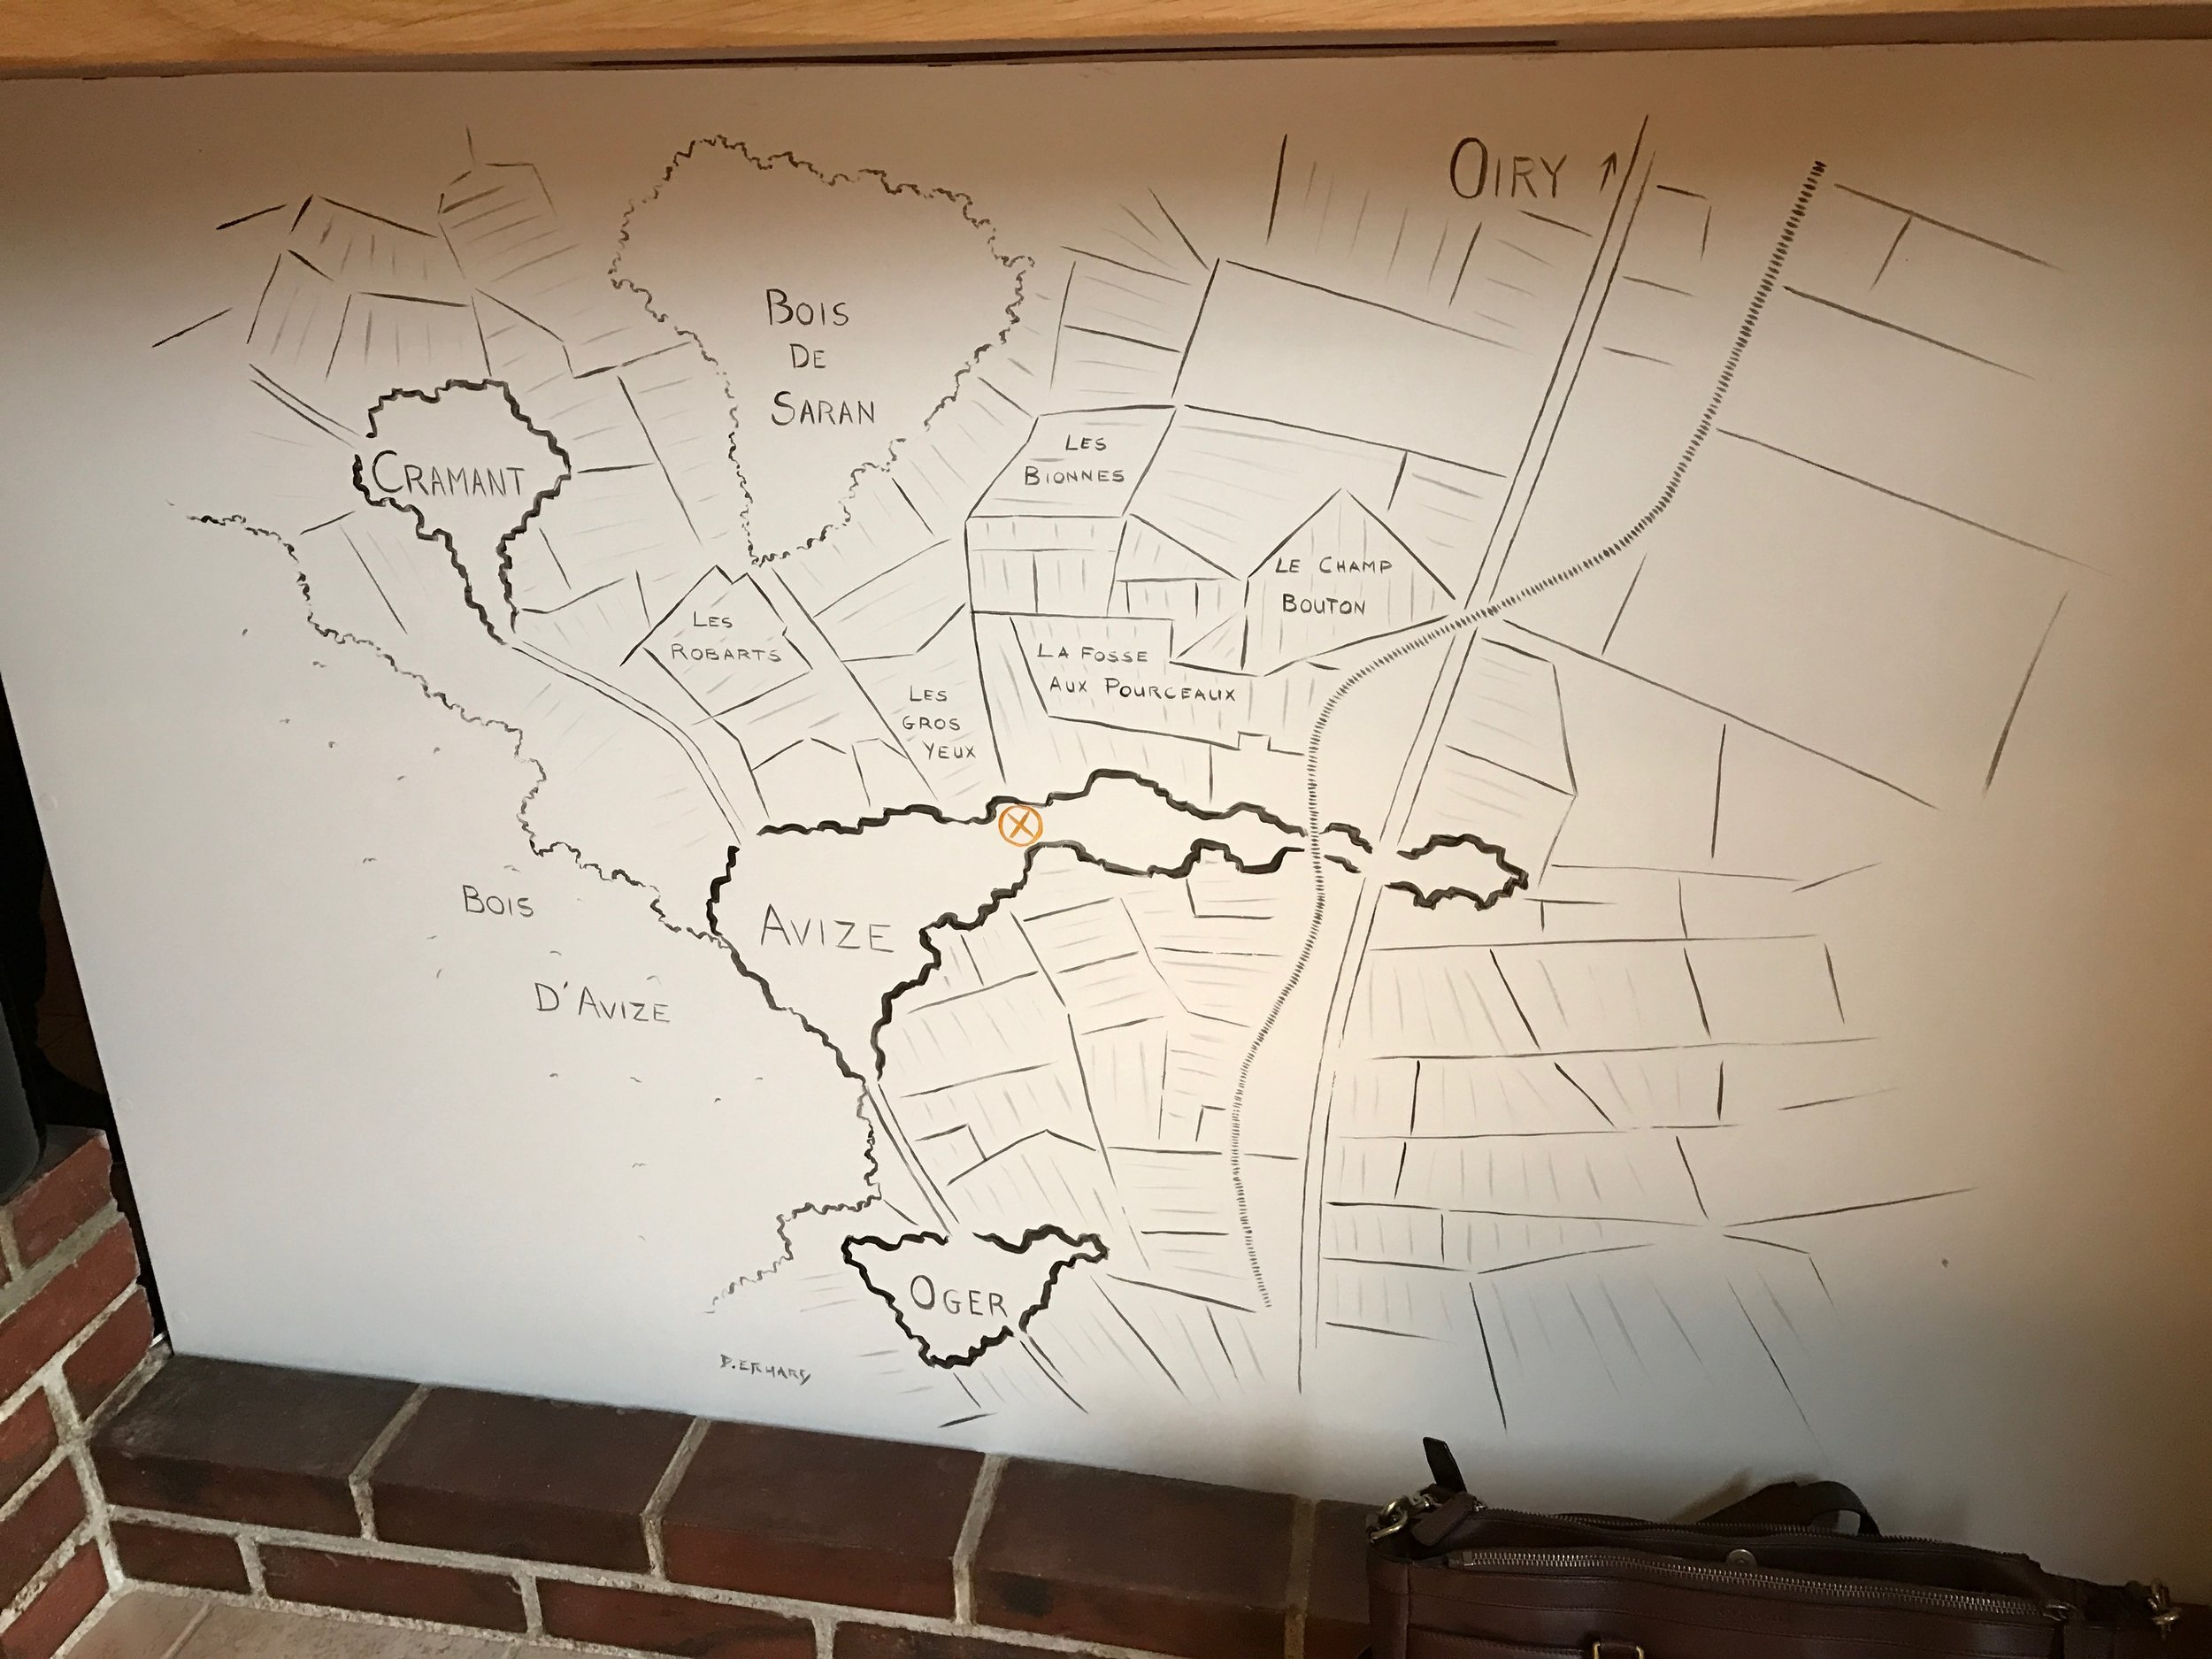 The map detailing their vineyards painted on their modest tasting bar.